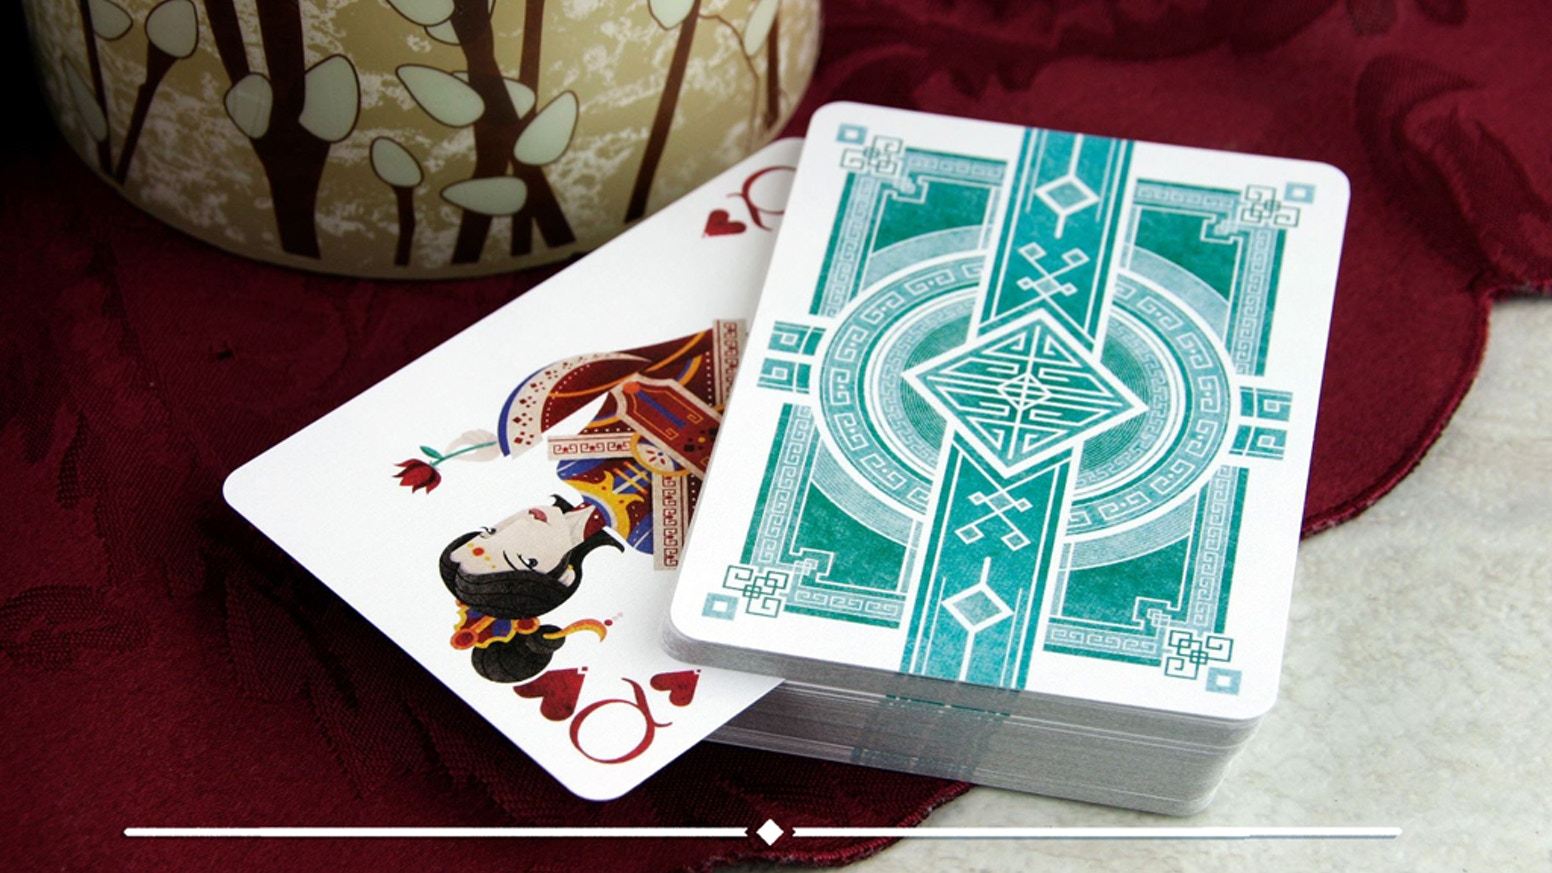 An unique playing card series inspired by my Chinese culture and heritage, designed and illustrated by Brendan Hong.